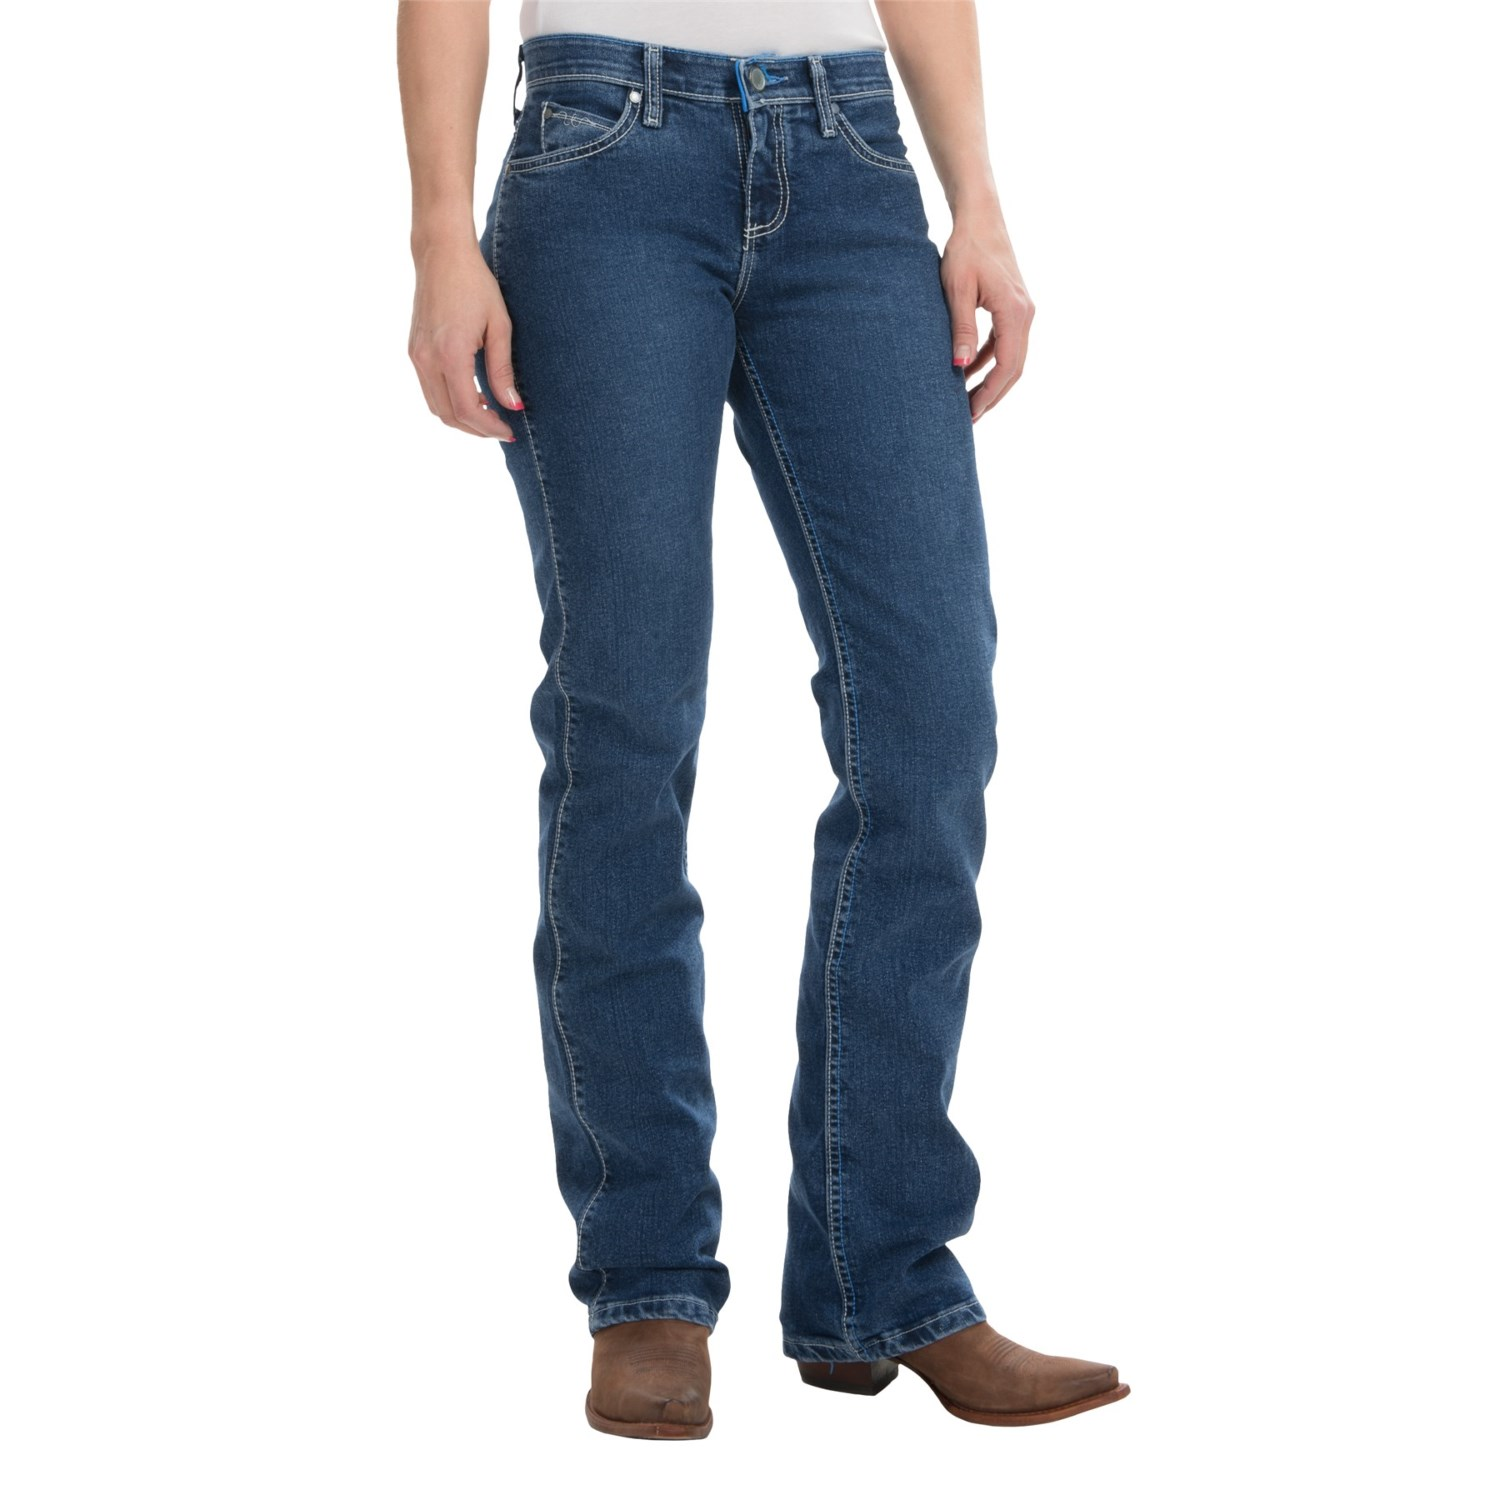 Wrangler Cool Vantage Q-Baby Jeans (For Women) - Save 50%